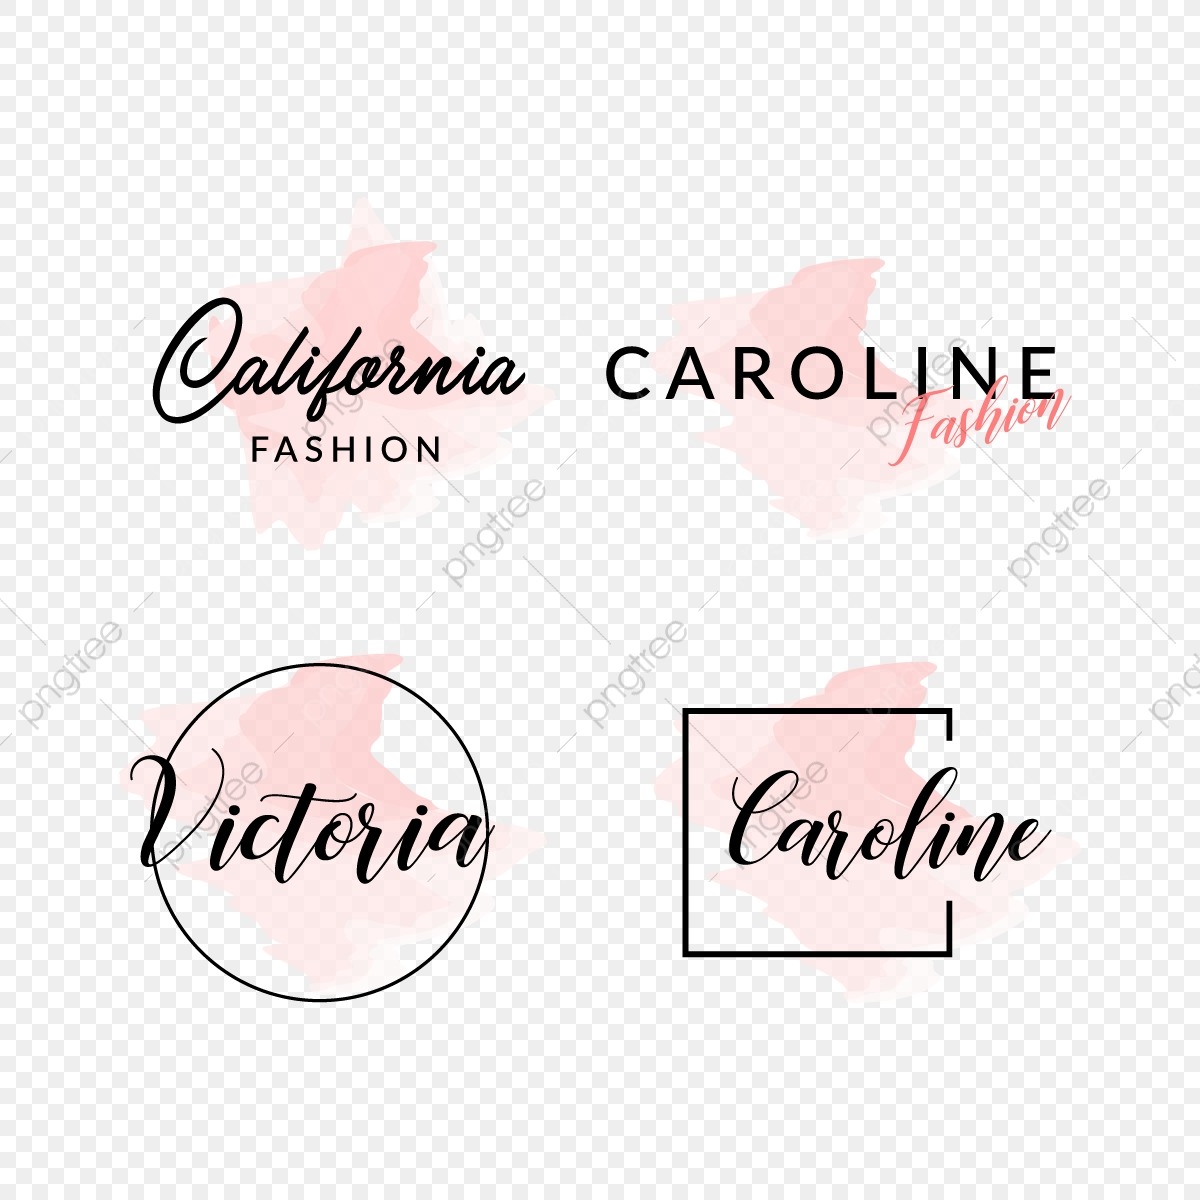 Feminine Fashion Logo Design Logo Feminine Set Png And Vector With Transparent Background For Free Download